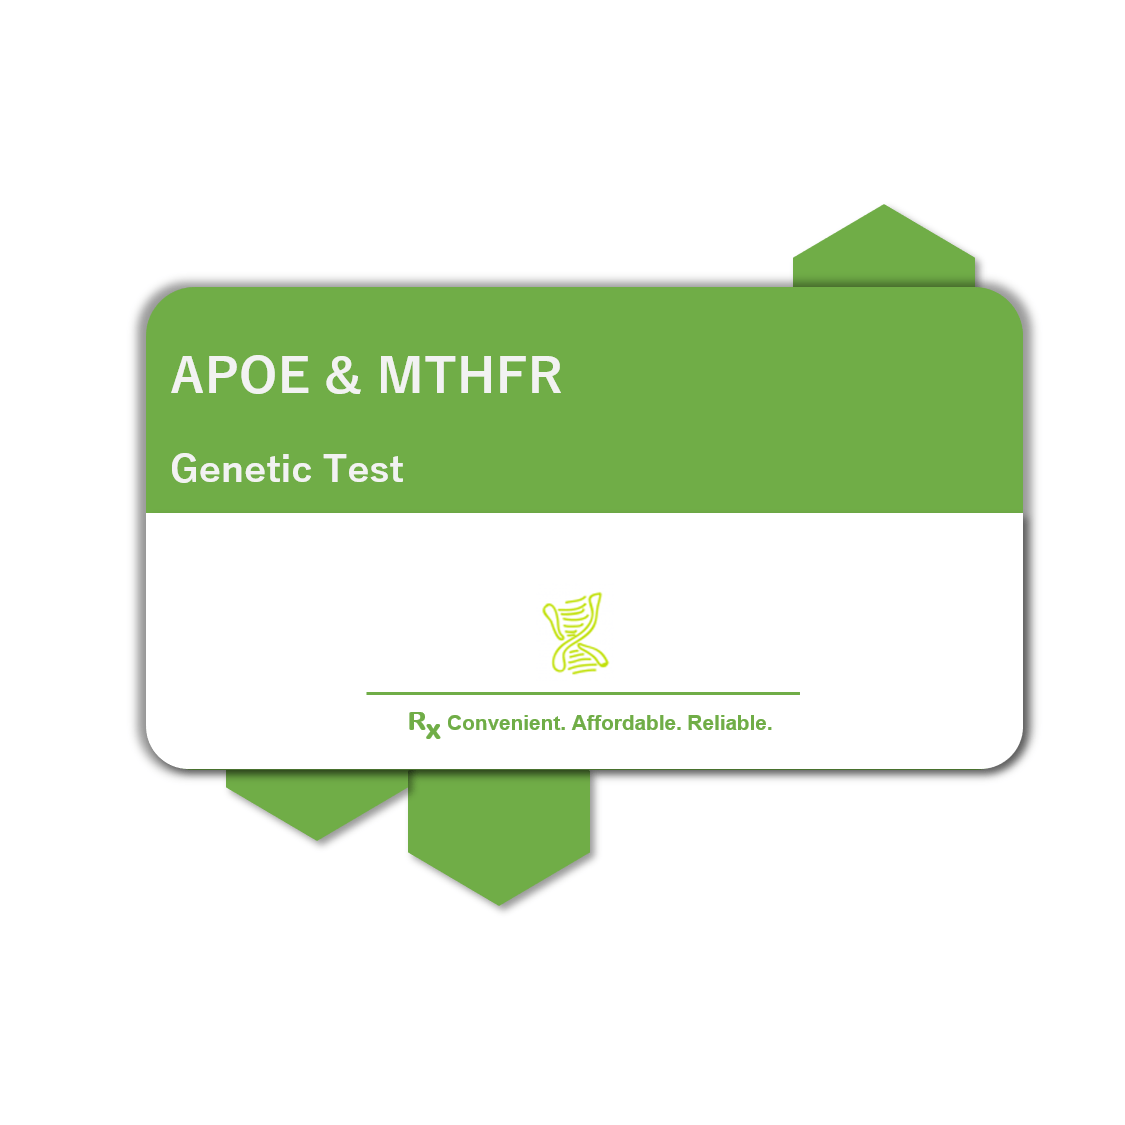 Current image of APOE & MTHFR Genetic Test